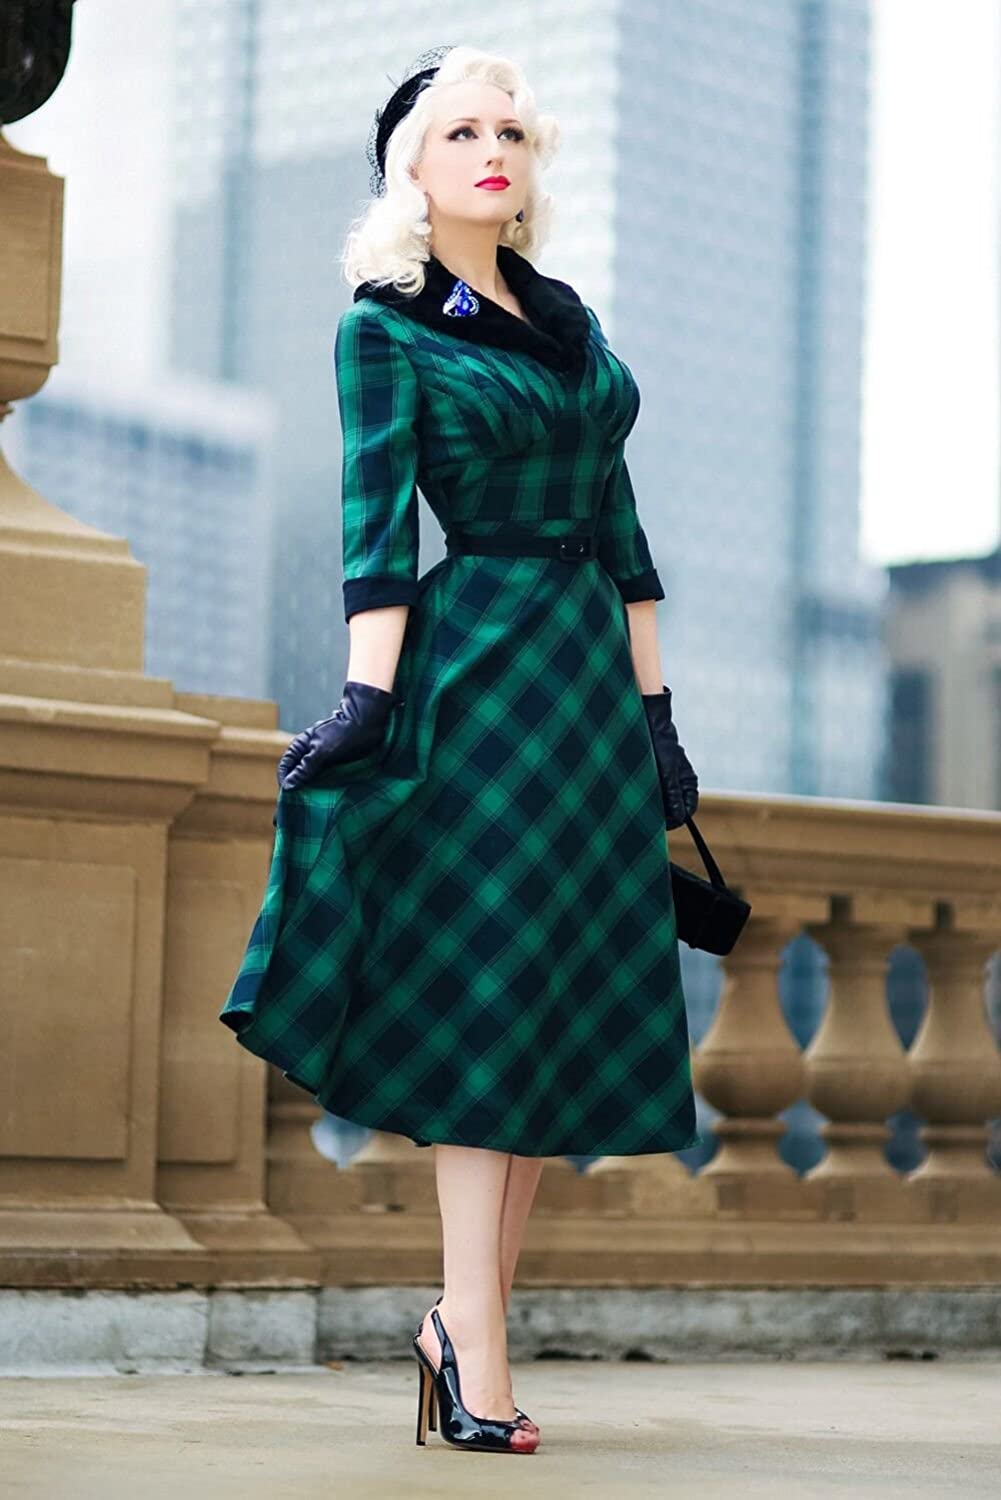 1950s Swing Dresses | 50s Swing Dress Voodoo Vixen Retro Vintage Lola Plaid Faux Fur Collar 3/4 Sleeve Swing Dress $81.95 AT vintagedancer.com